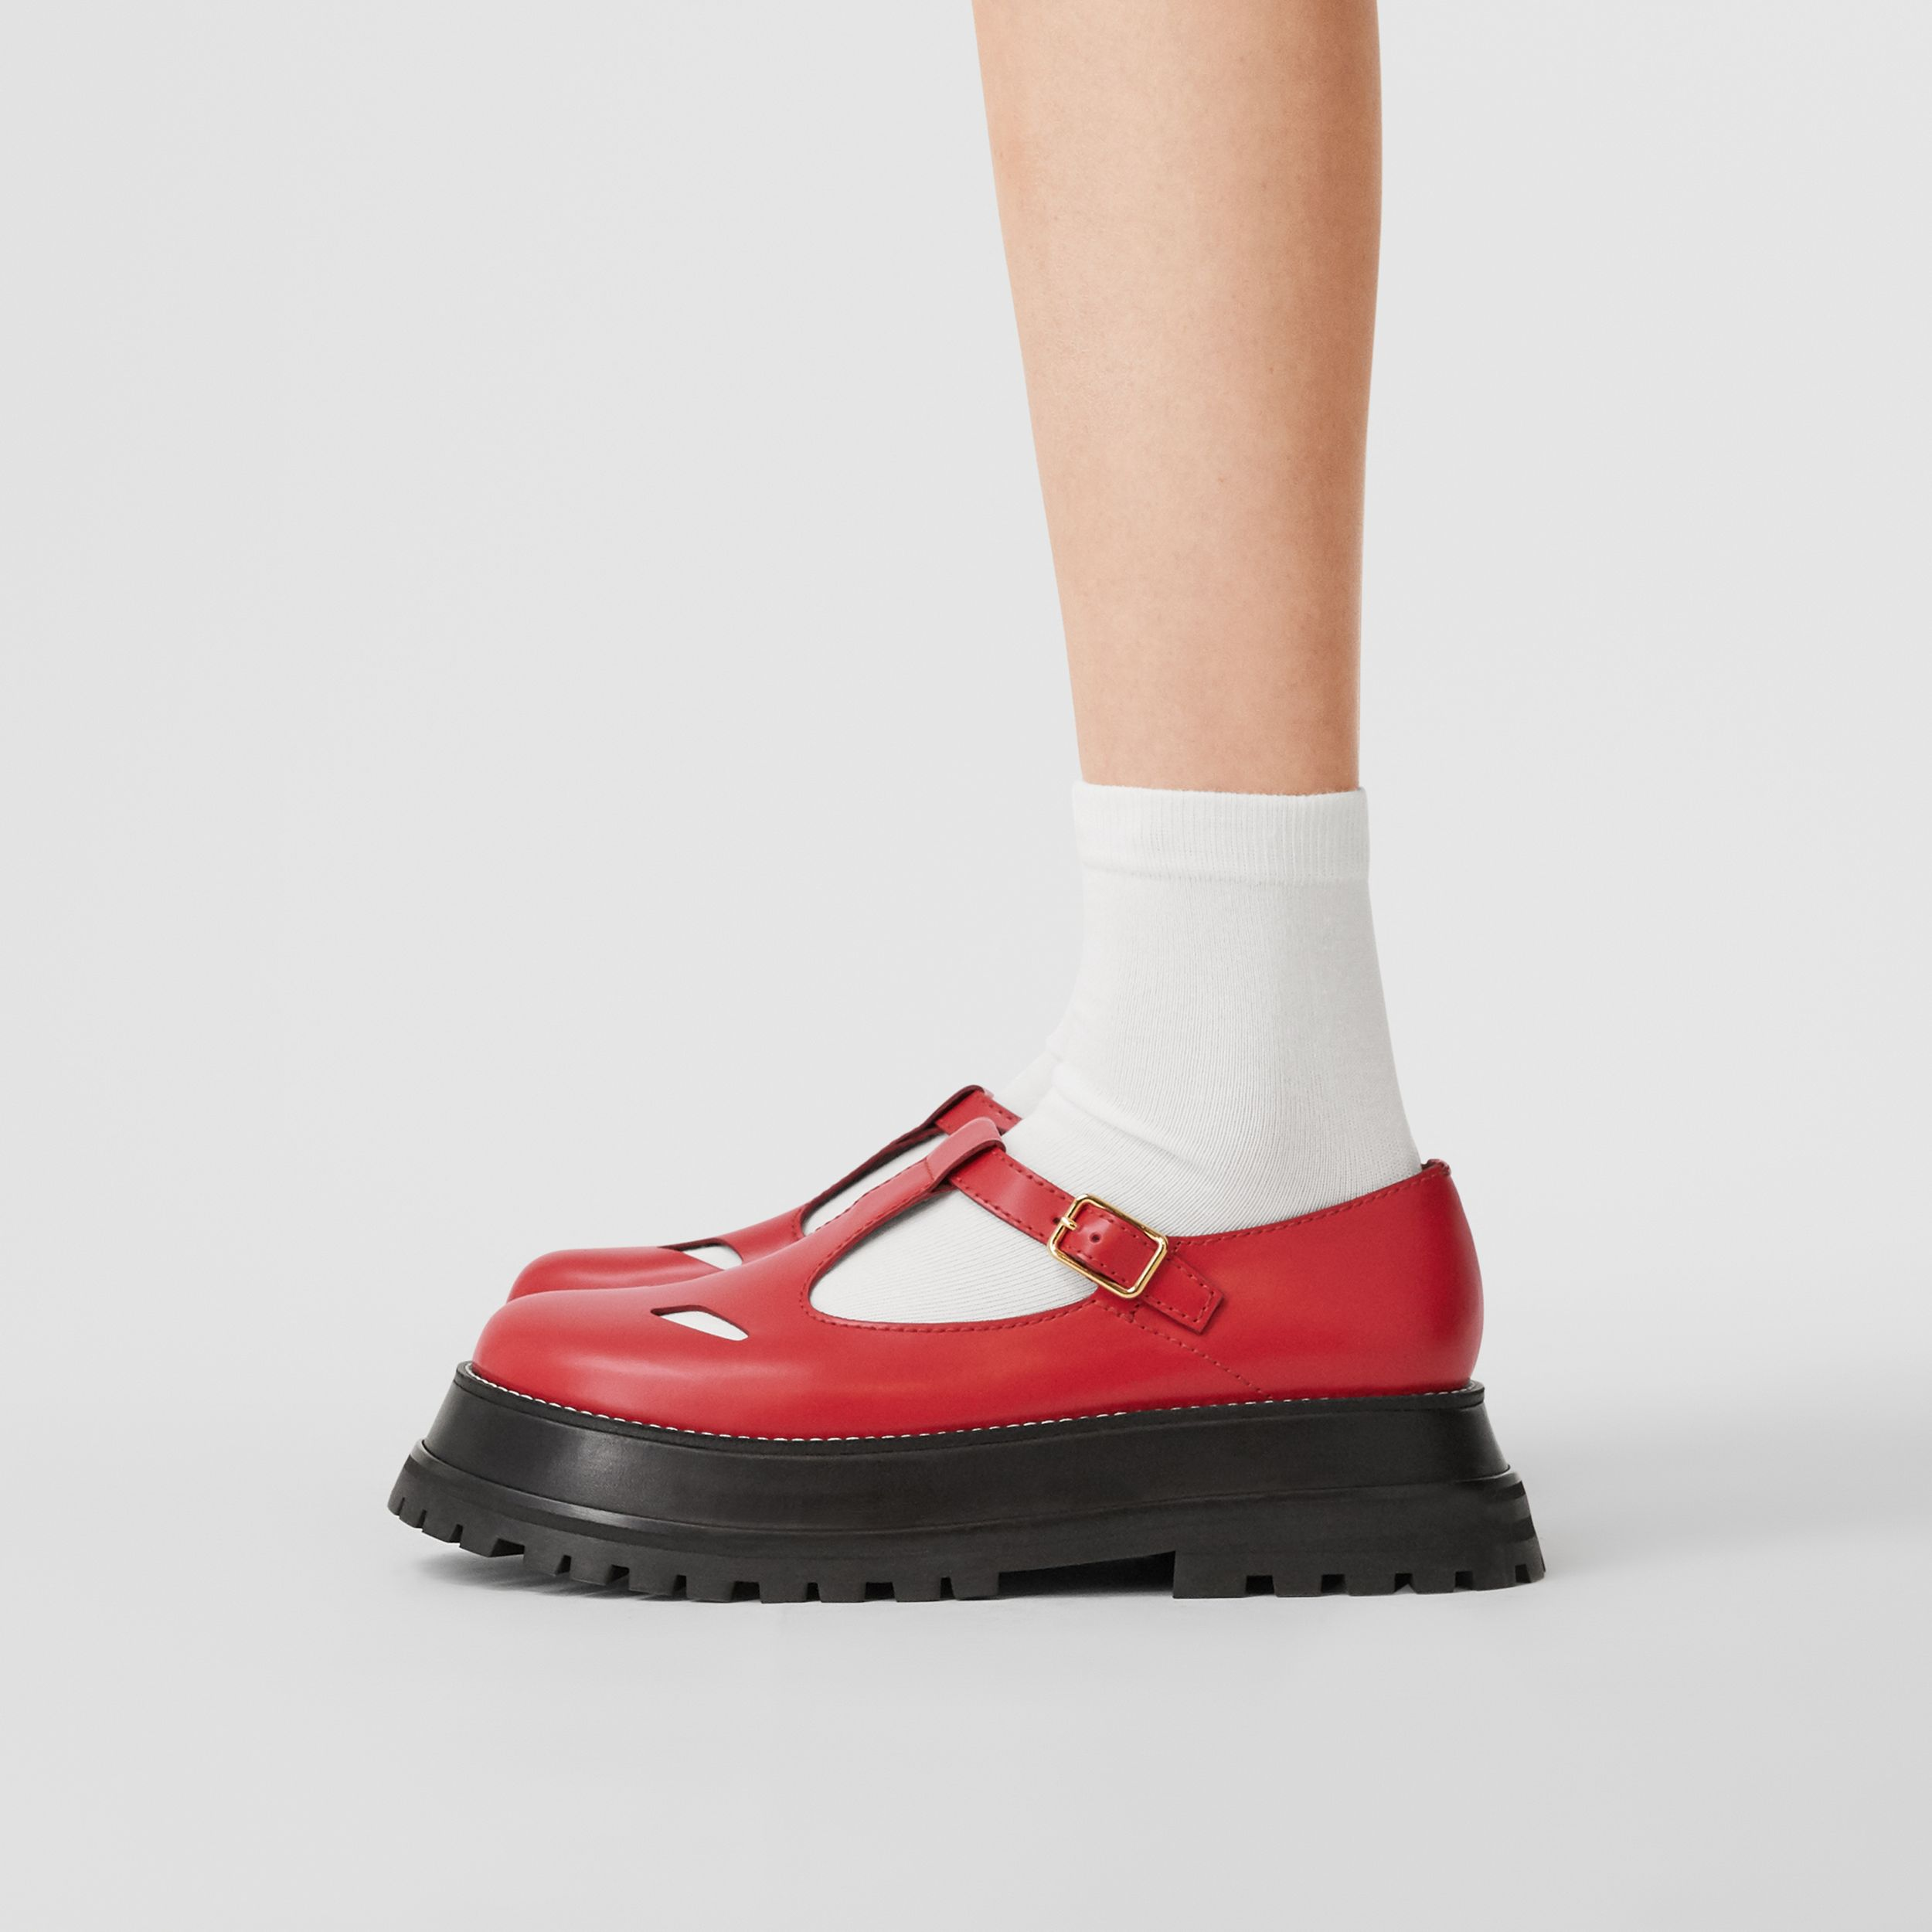 Leather T-bar Shoes in Red - Women | Burberry - 3